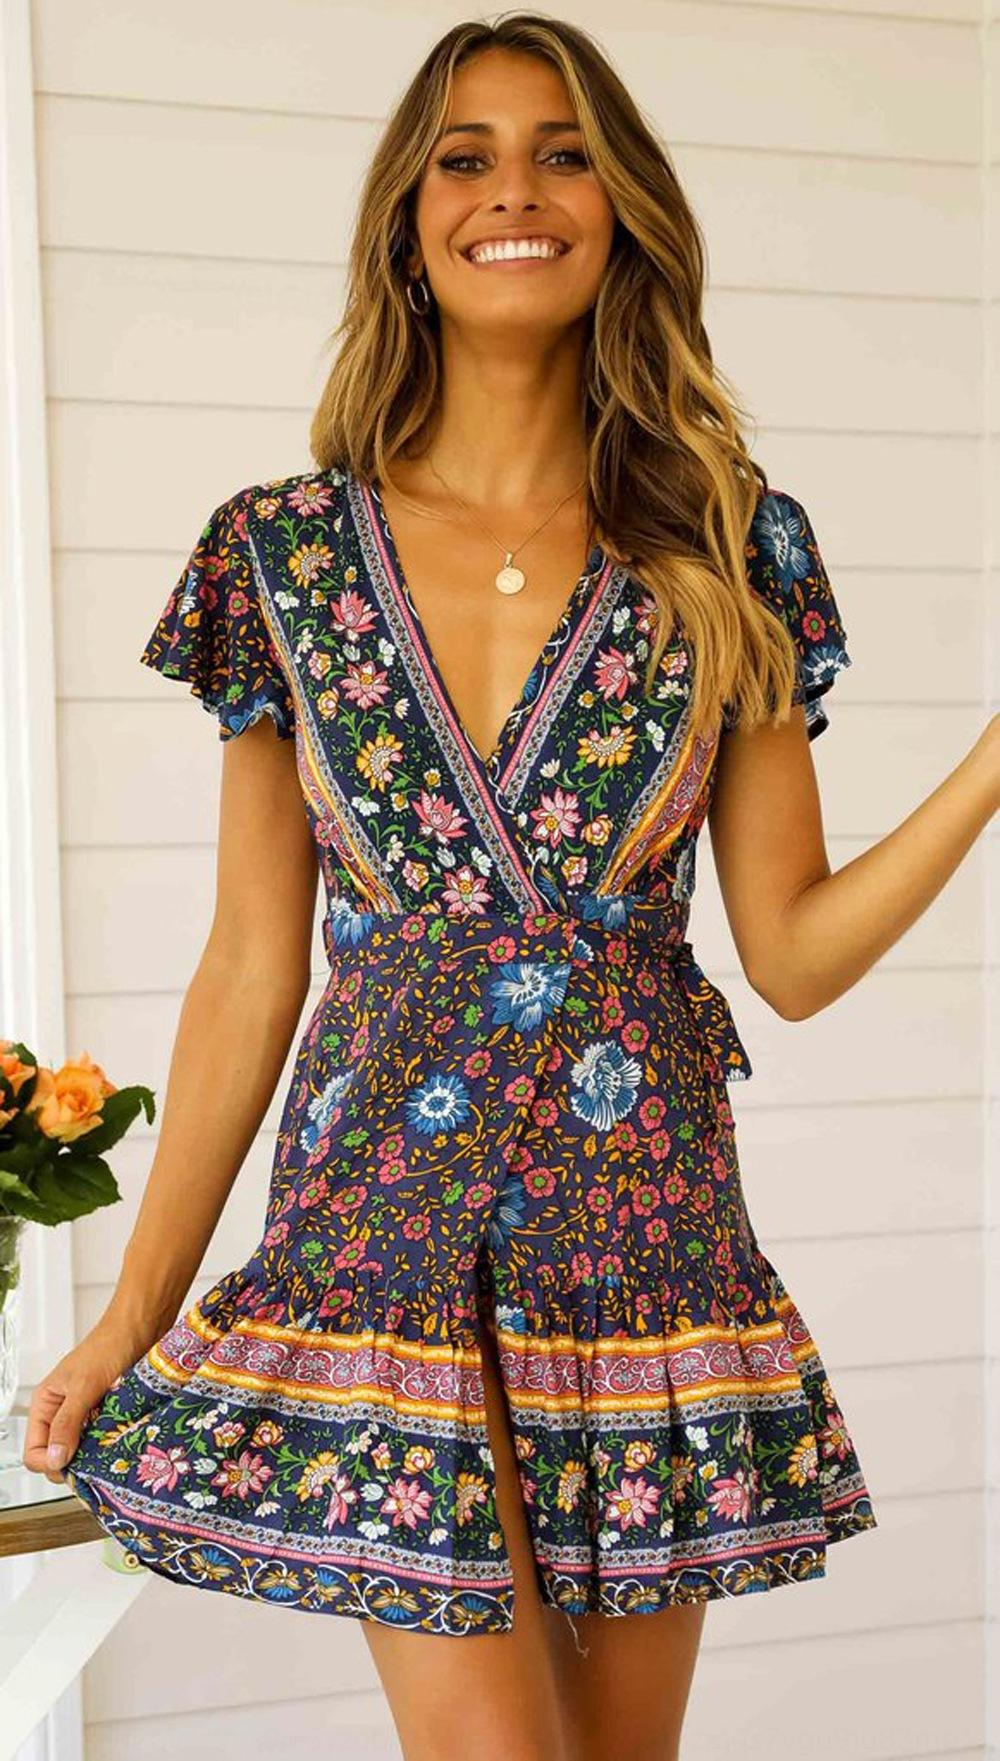 B95f 2015 Women Beach Cover Dress Long Length Loose Cover Suit Bathing Ups Ankle Sleeve Long Beach Up Sheer Vintage Swimsuit FC532